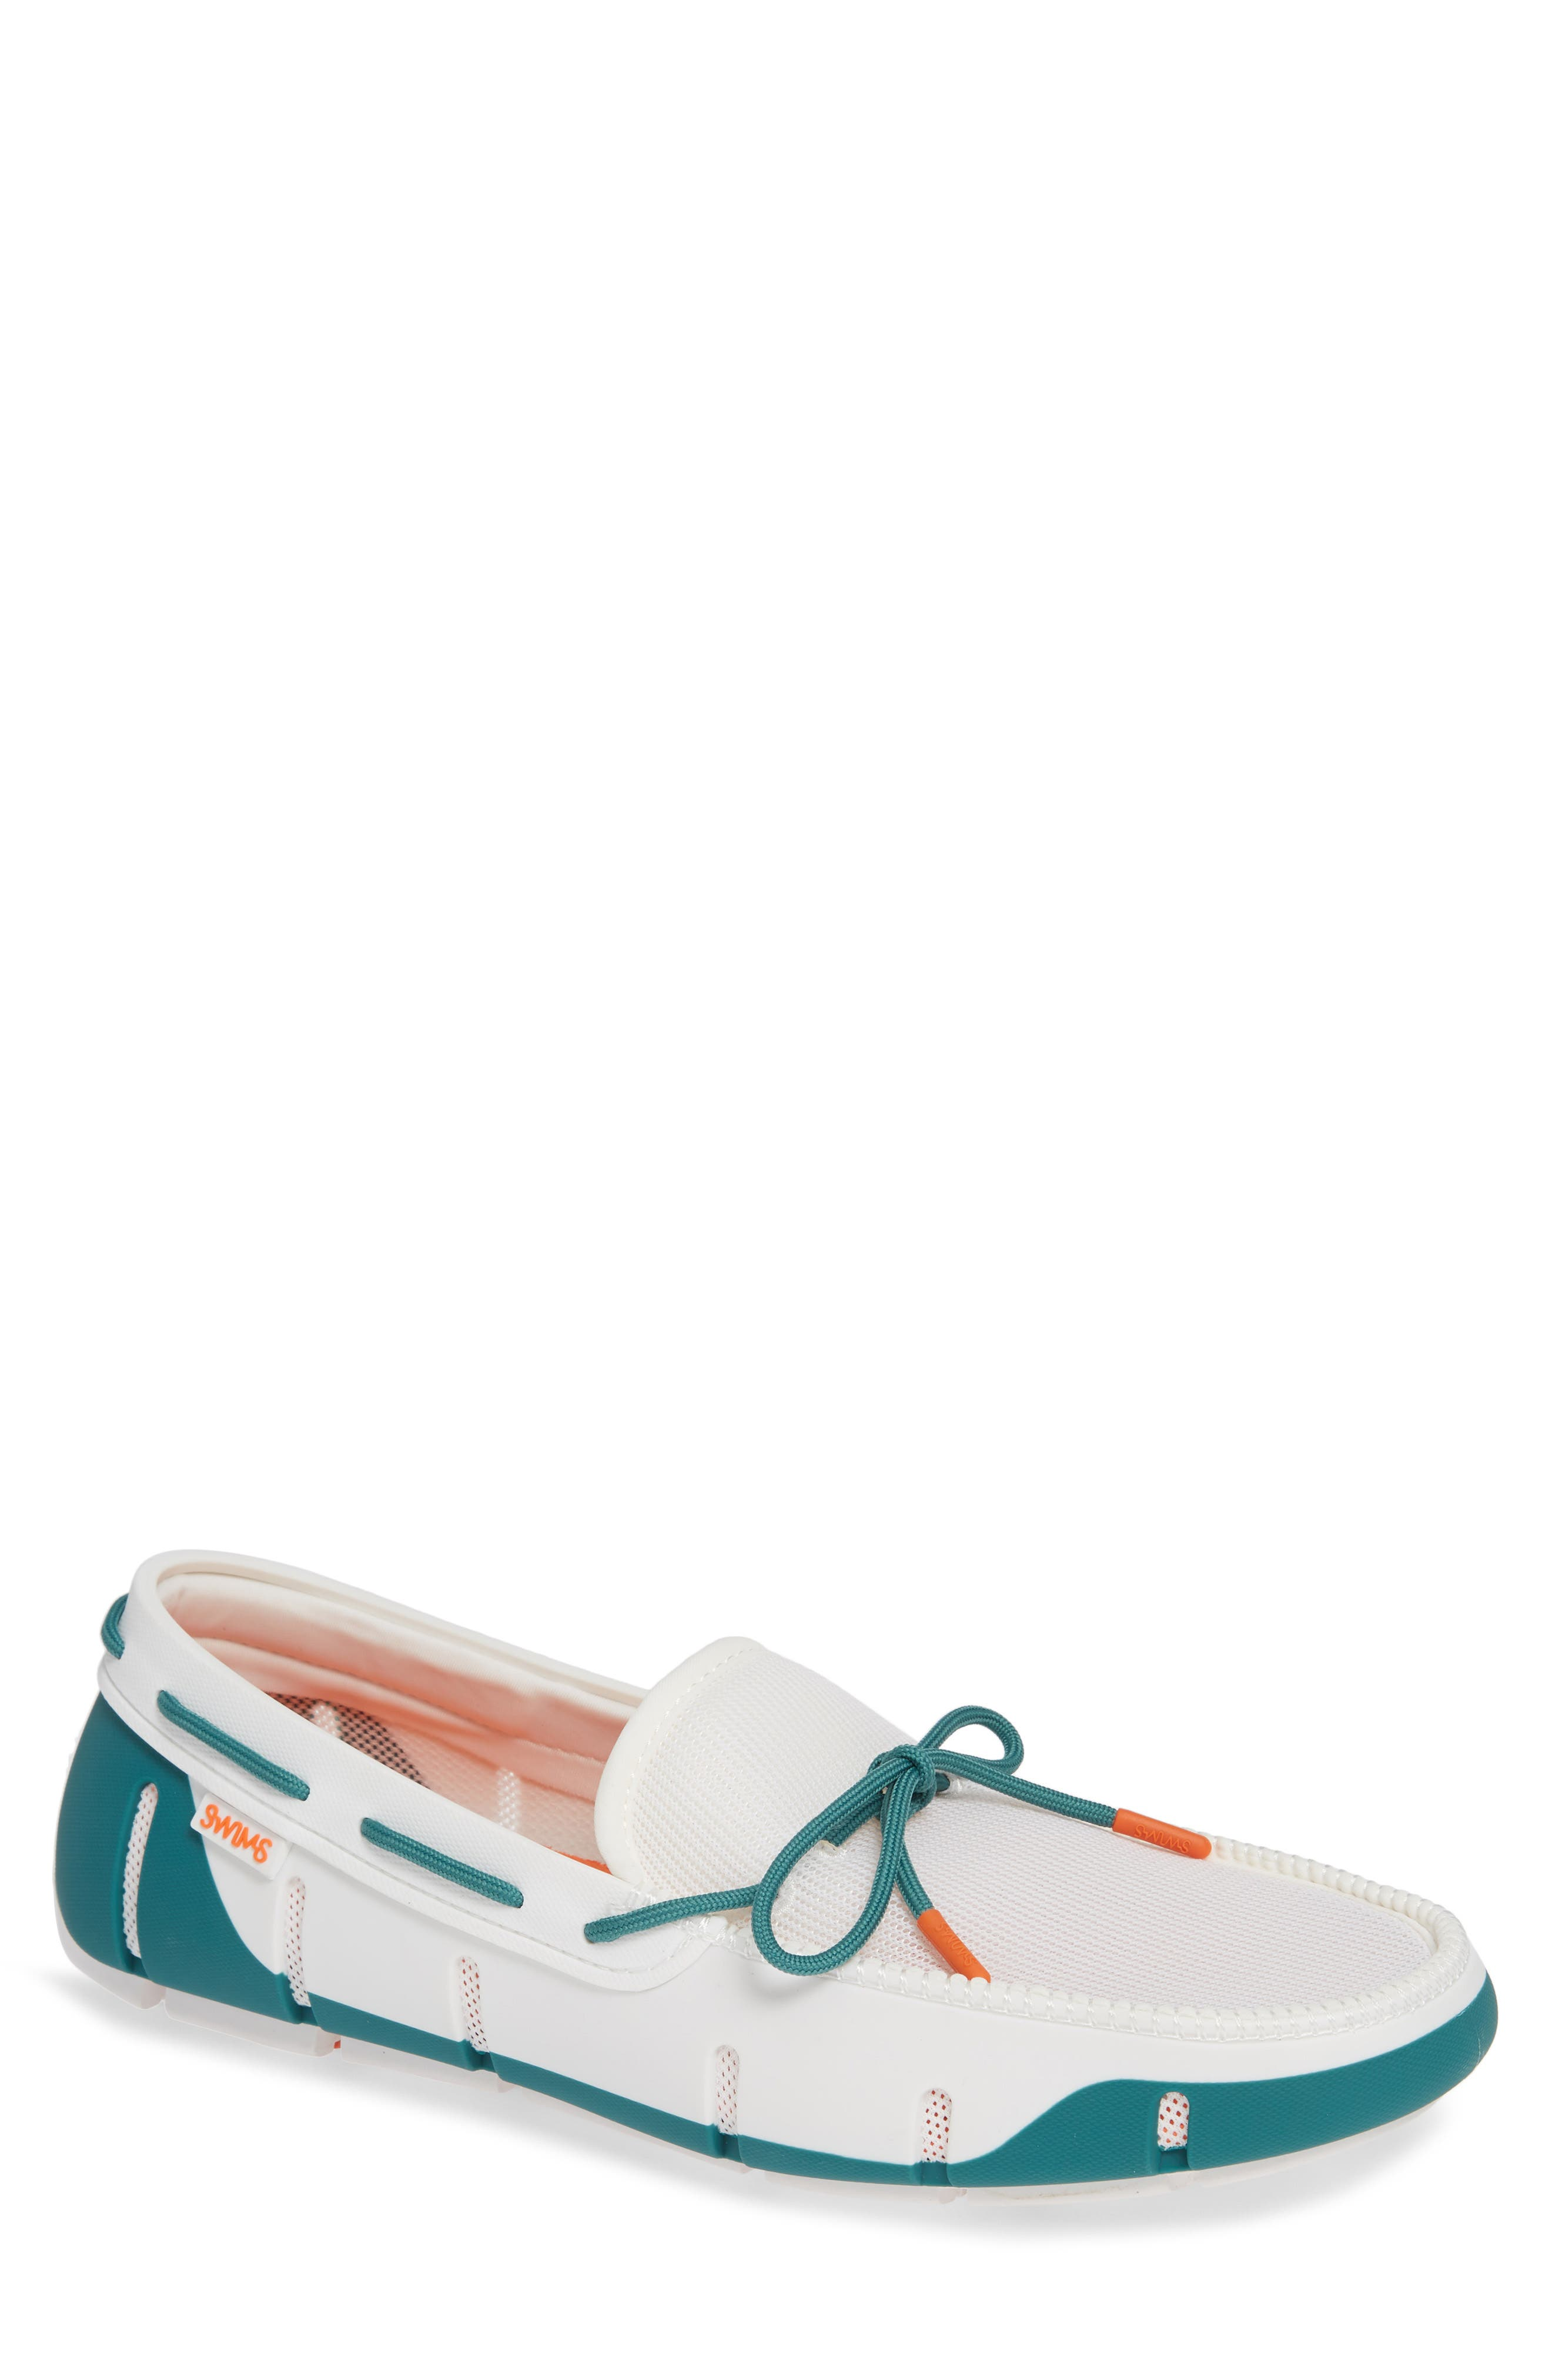 Stride Lace Loafer,                             Main thumbnail 1, color,                             WHITE/ TEAL